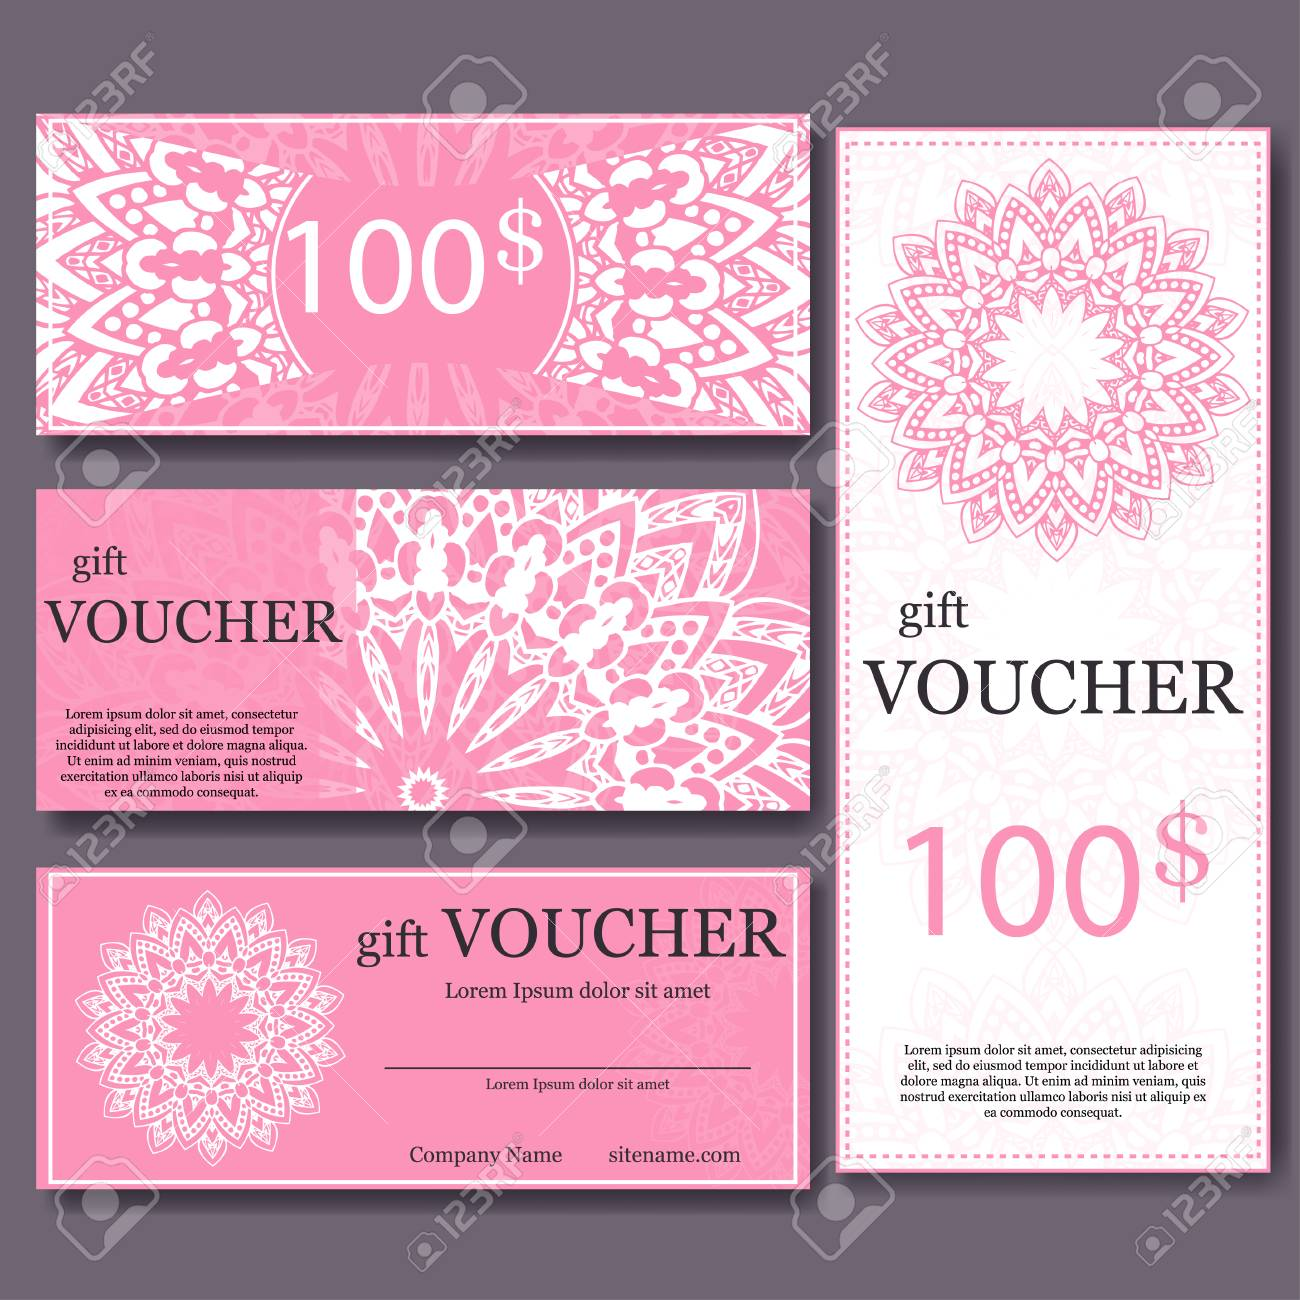 Gift Voucher Template With Mandala Design Certificate For Sport - Magazine subscription gift certificate template